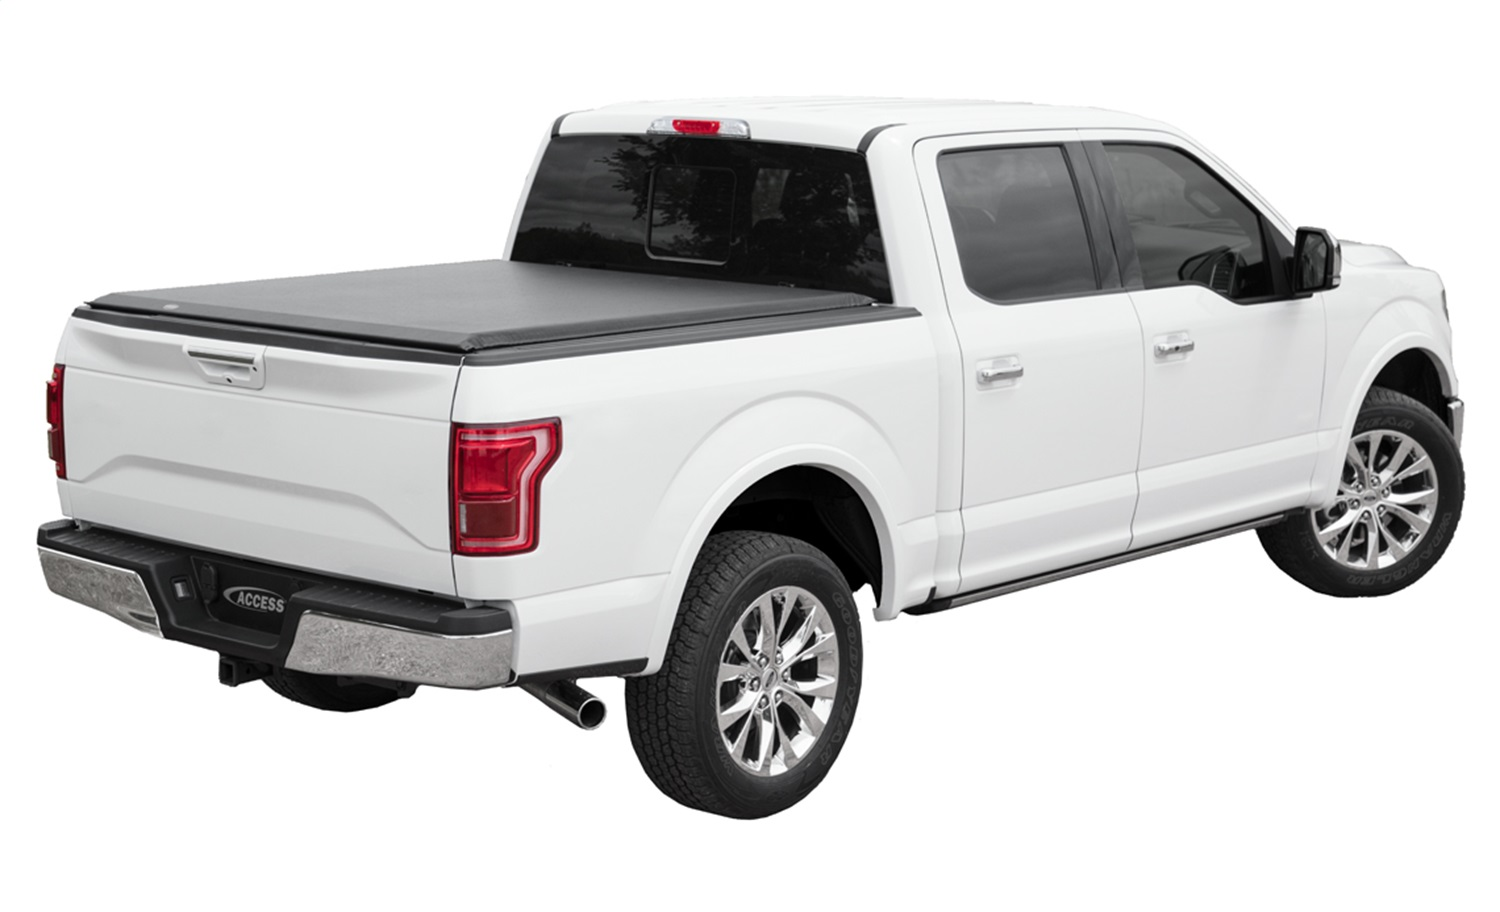 Access Cover 21369 ACCESS Limited Edition Roll-Up Cover Fits 15-20 F-150